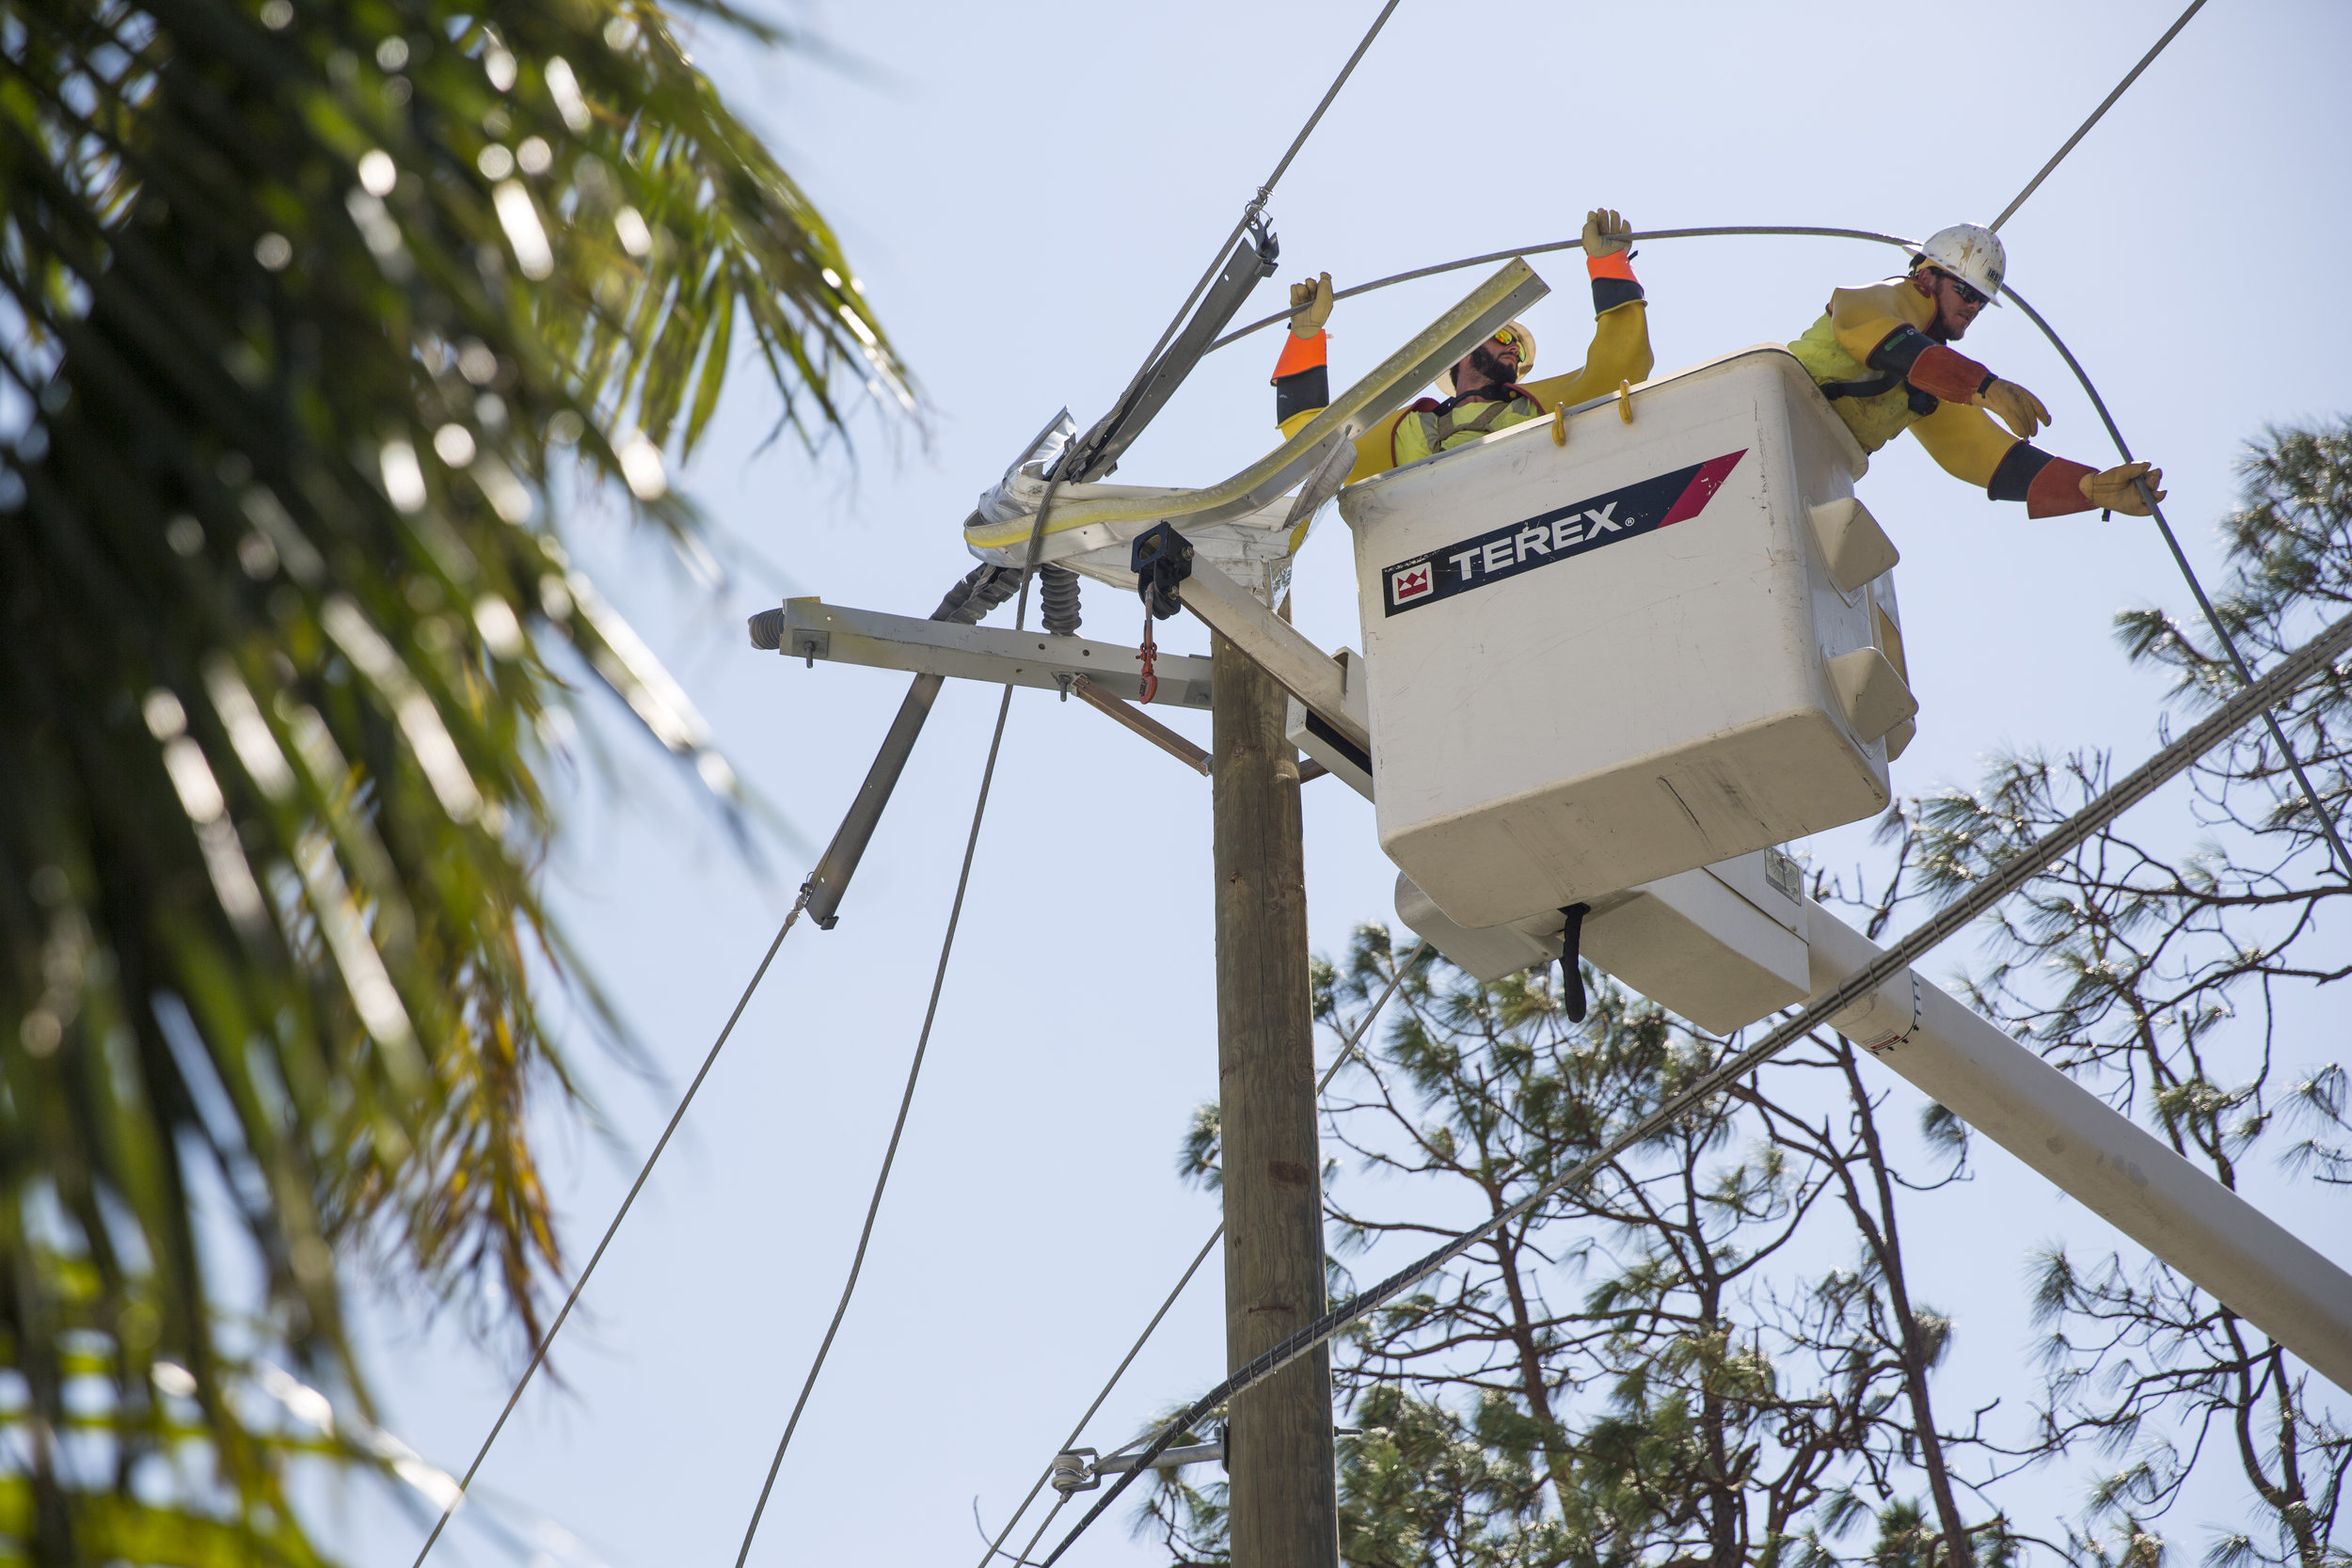 Employees of Irby Construction work to repair power lines in Naples on Monday, September 18, 2017. Roughly 2,300 workers from the company were contracted to assist FPL in restoring power on Florida's west coast.